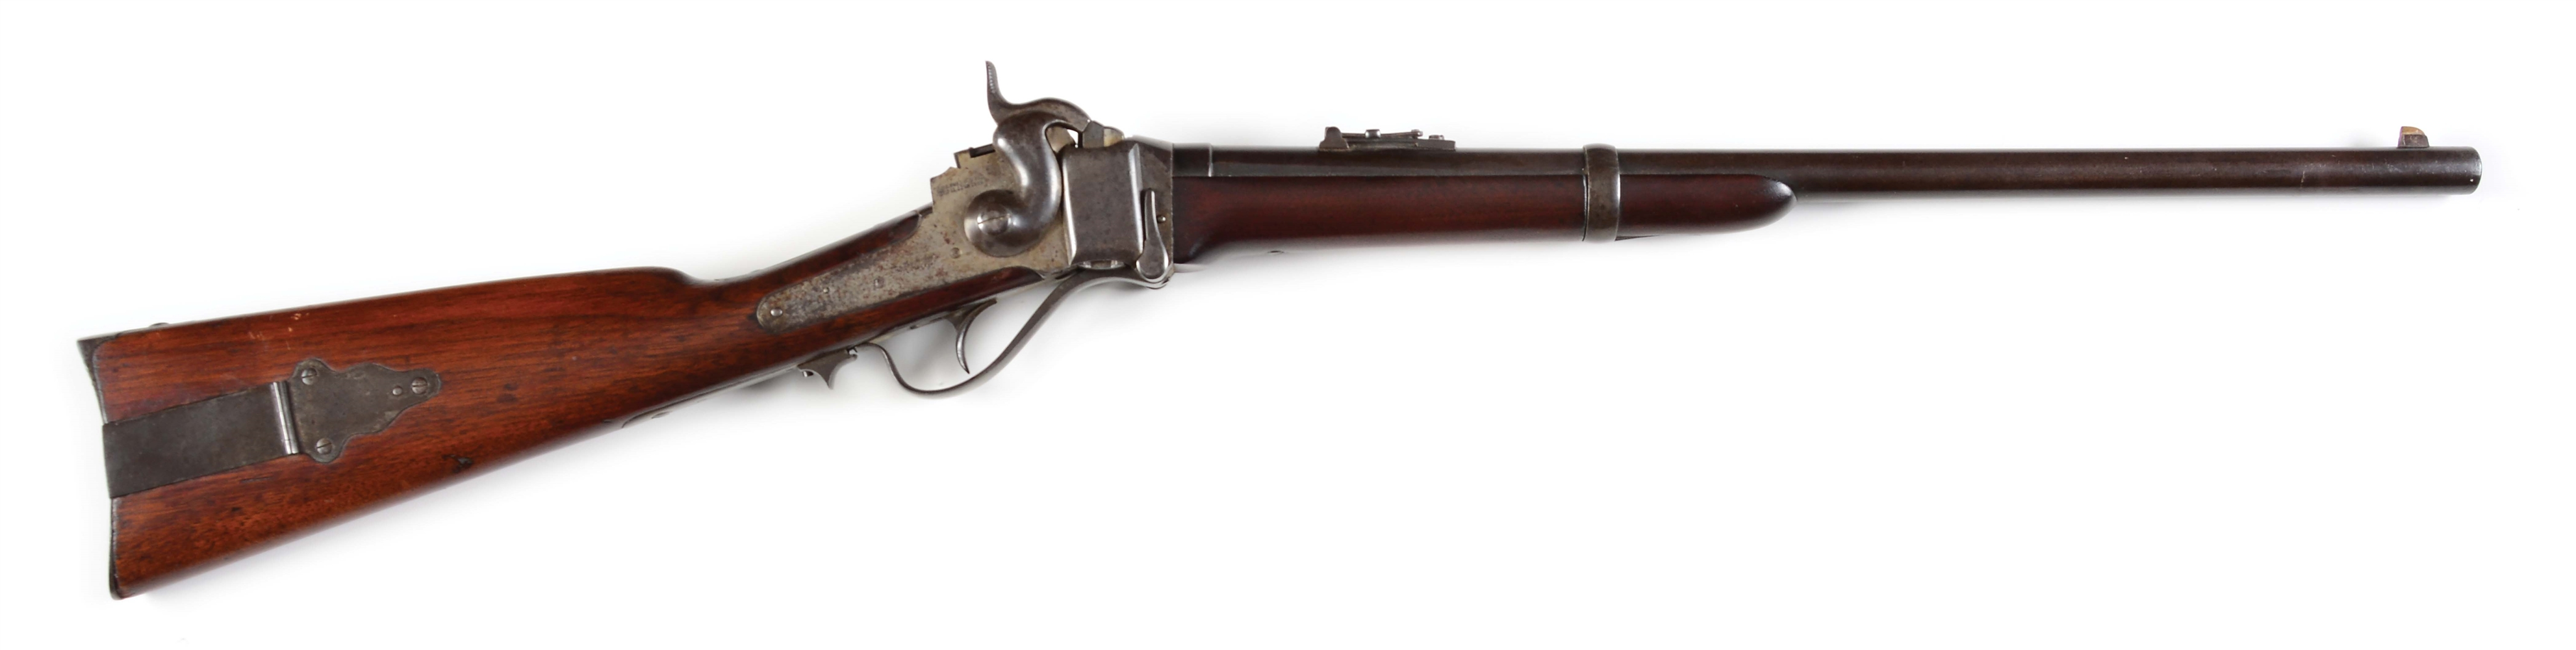 (A) SHARPS NEW MODEL 1868 SADDLE RING CARBINE, INDIAN WARS .50-70 CARTRIDGE CONVERSION.